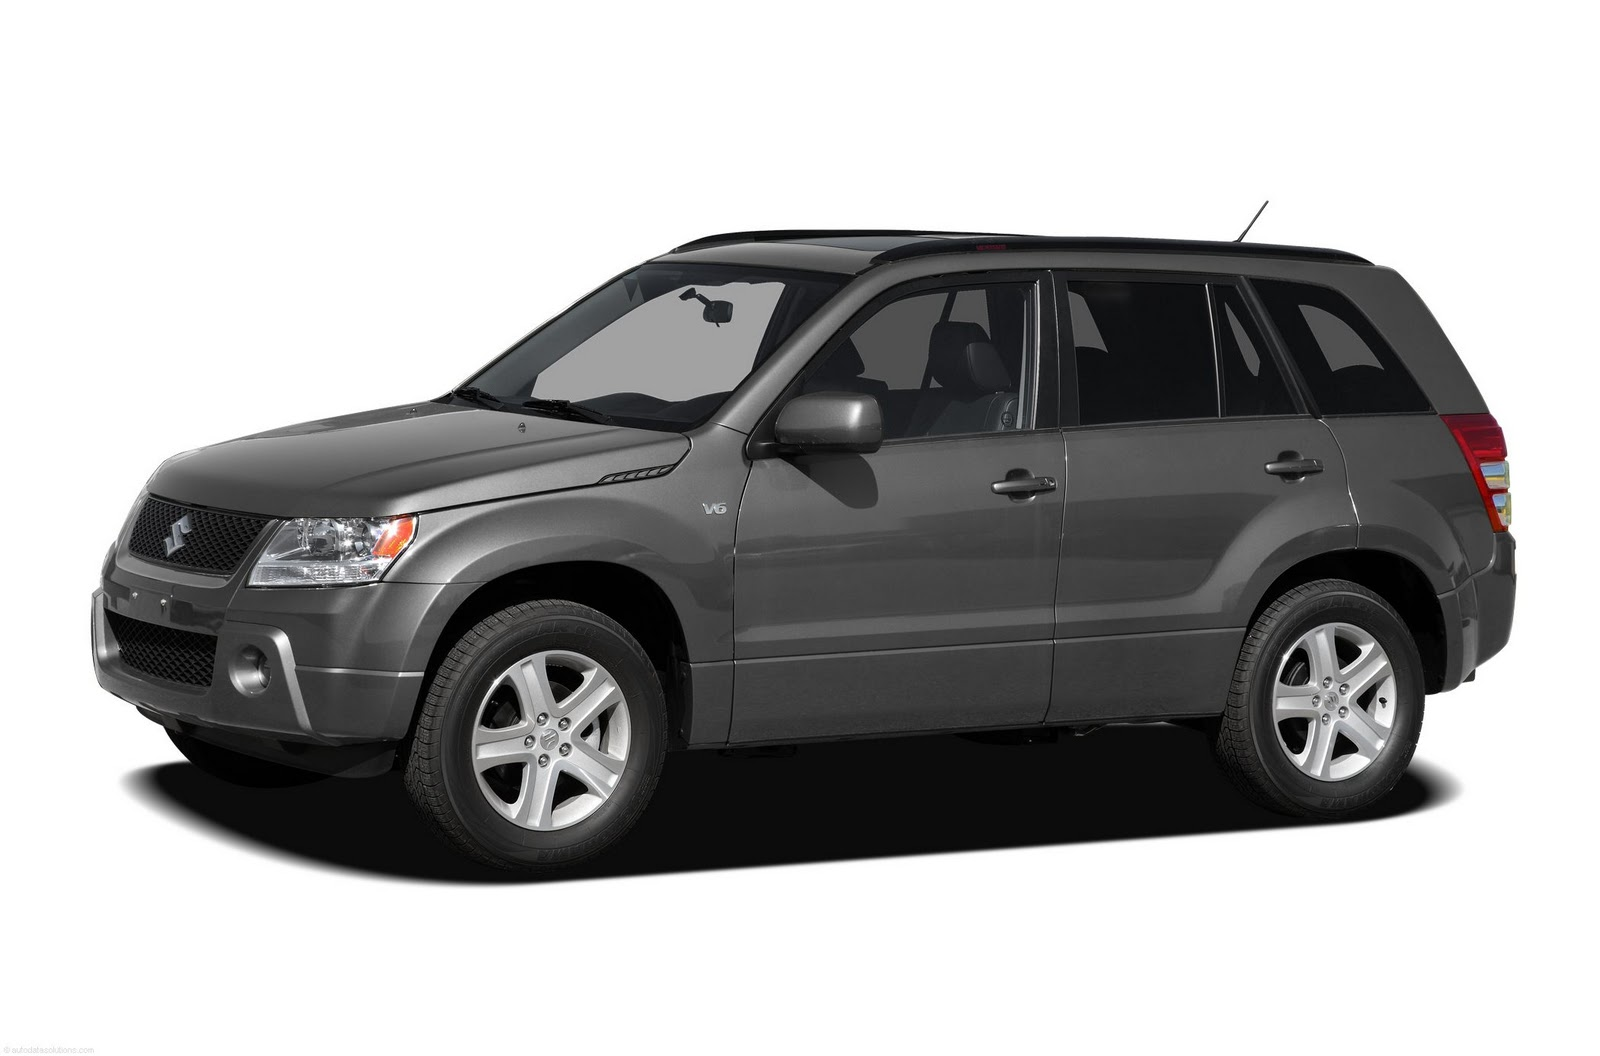 Workshop manual of suzuki grand vitara seciond generation can be downloaded  here absolutely free. This vehicle manual of Suzuki grand vitara second ...